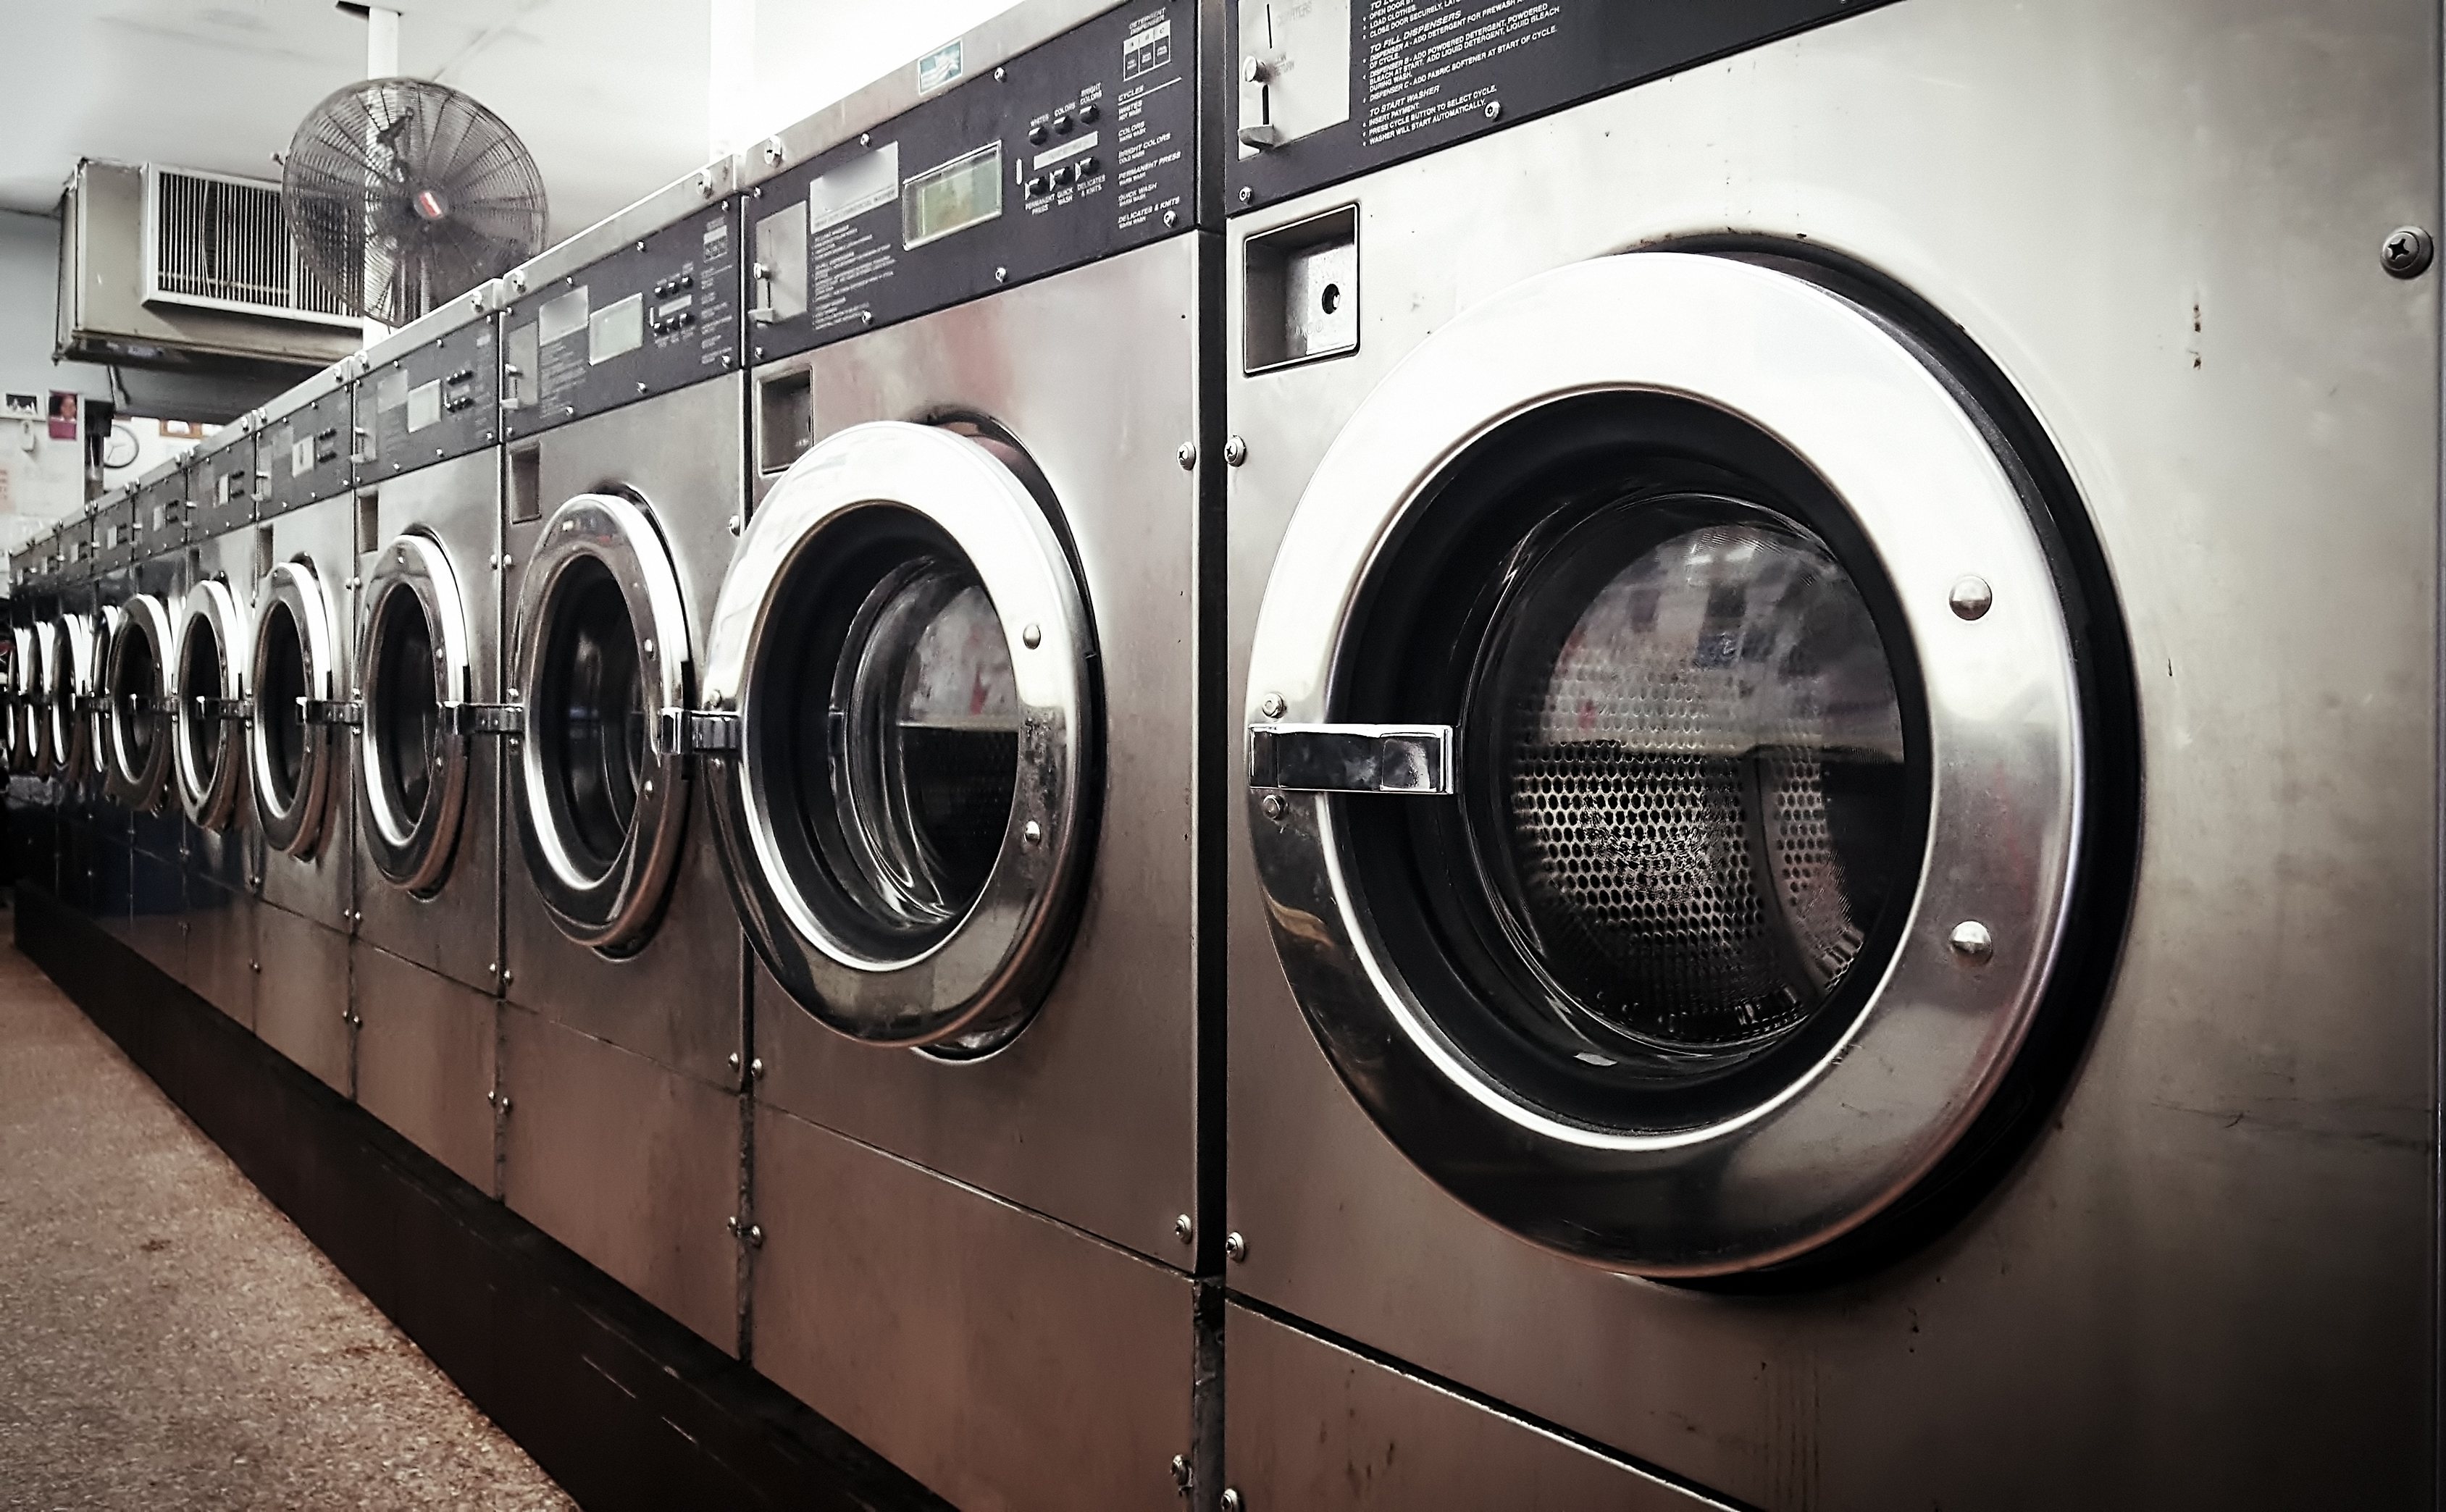 How to Start a Laundry Business in the Philippines | Bizfluent